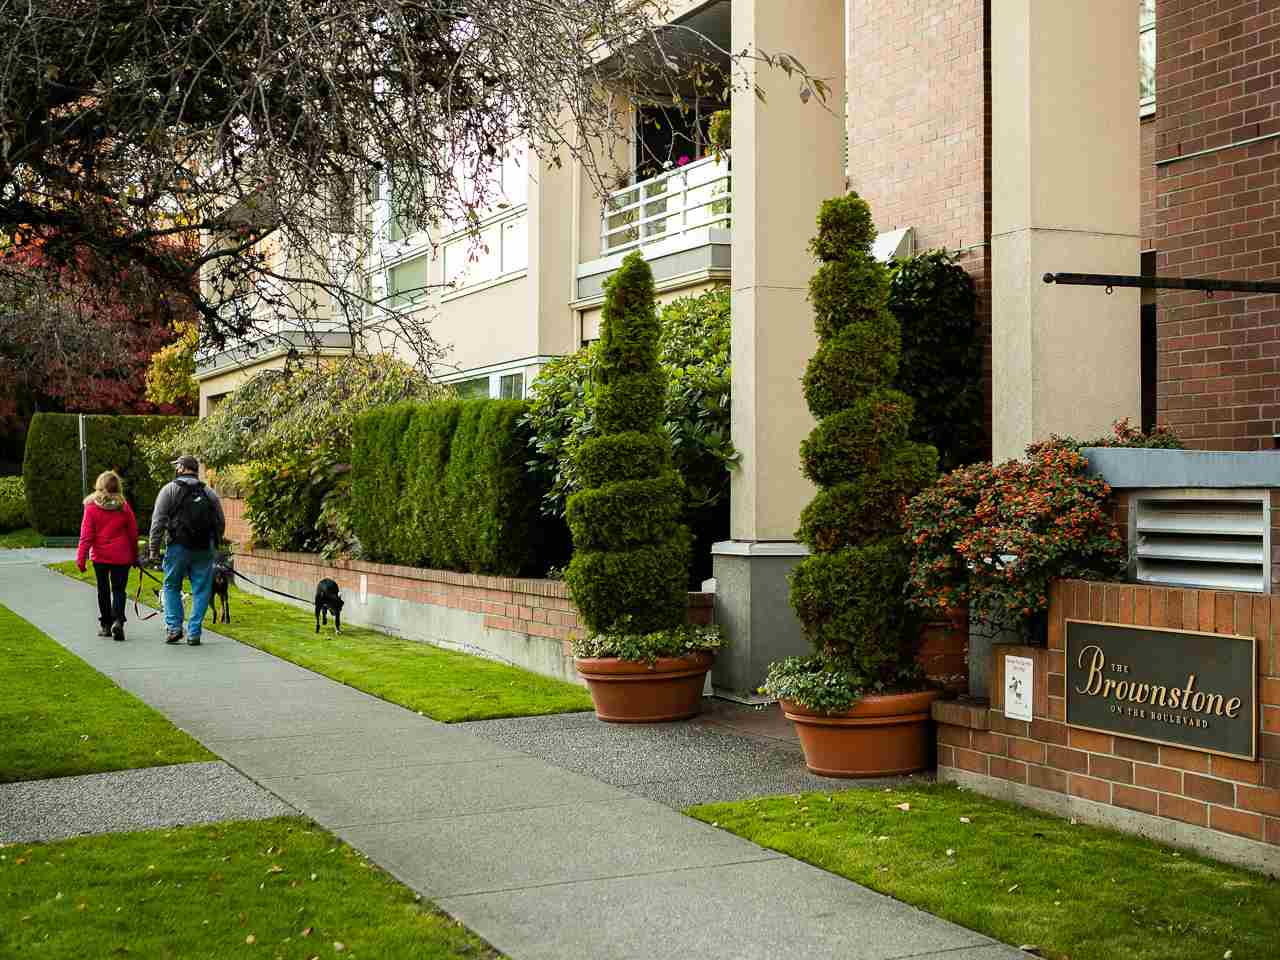 306 2105 W 42ND AVENUE - Kerrisdale Apartment/Condo for sale, 1 Bedroom (R2511504) - #24